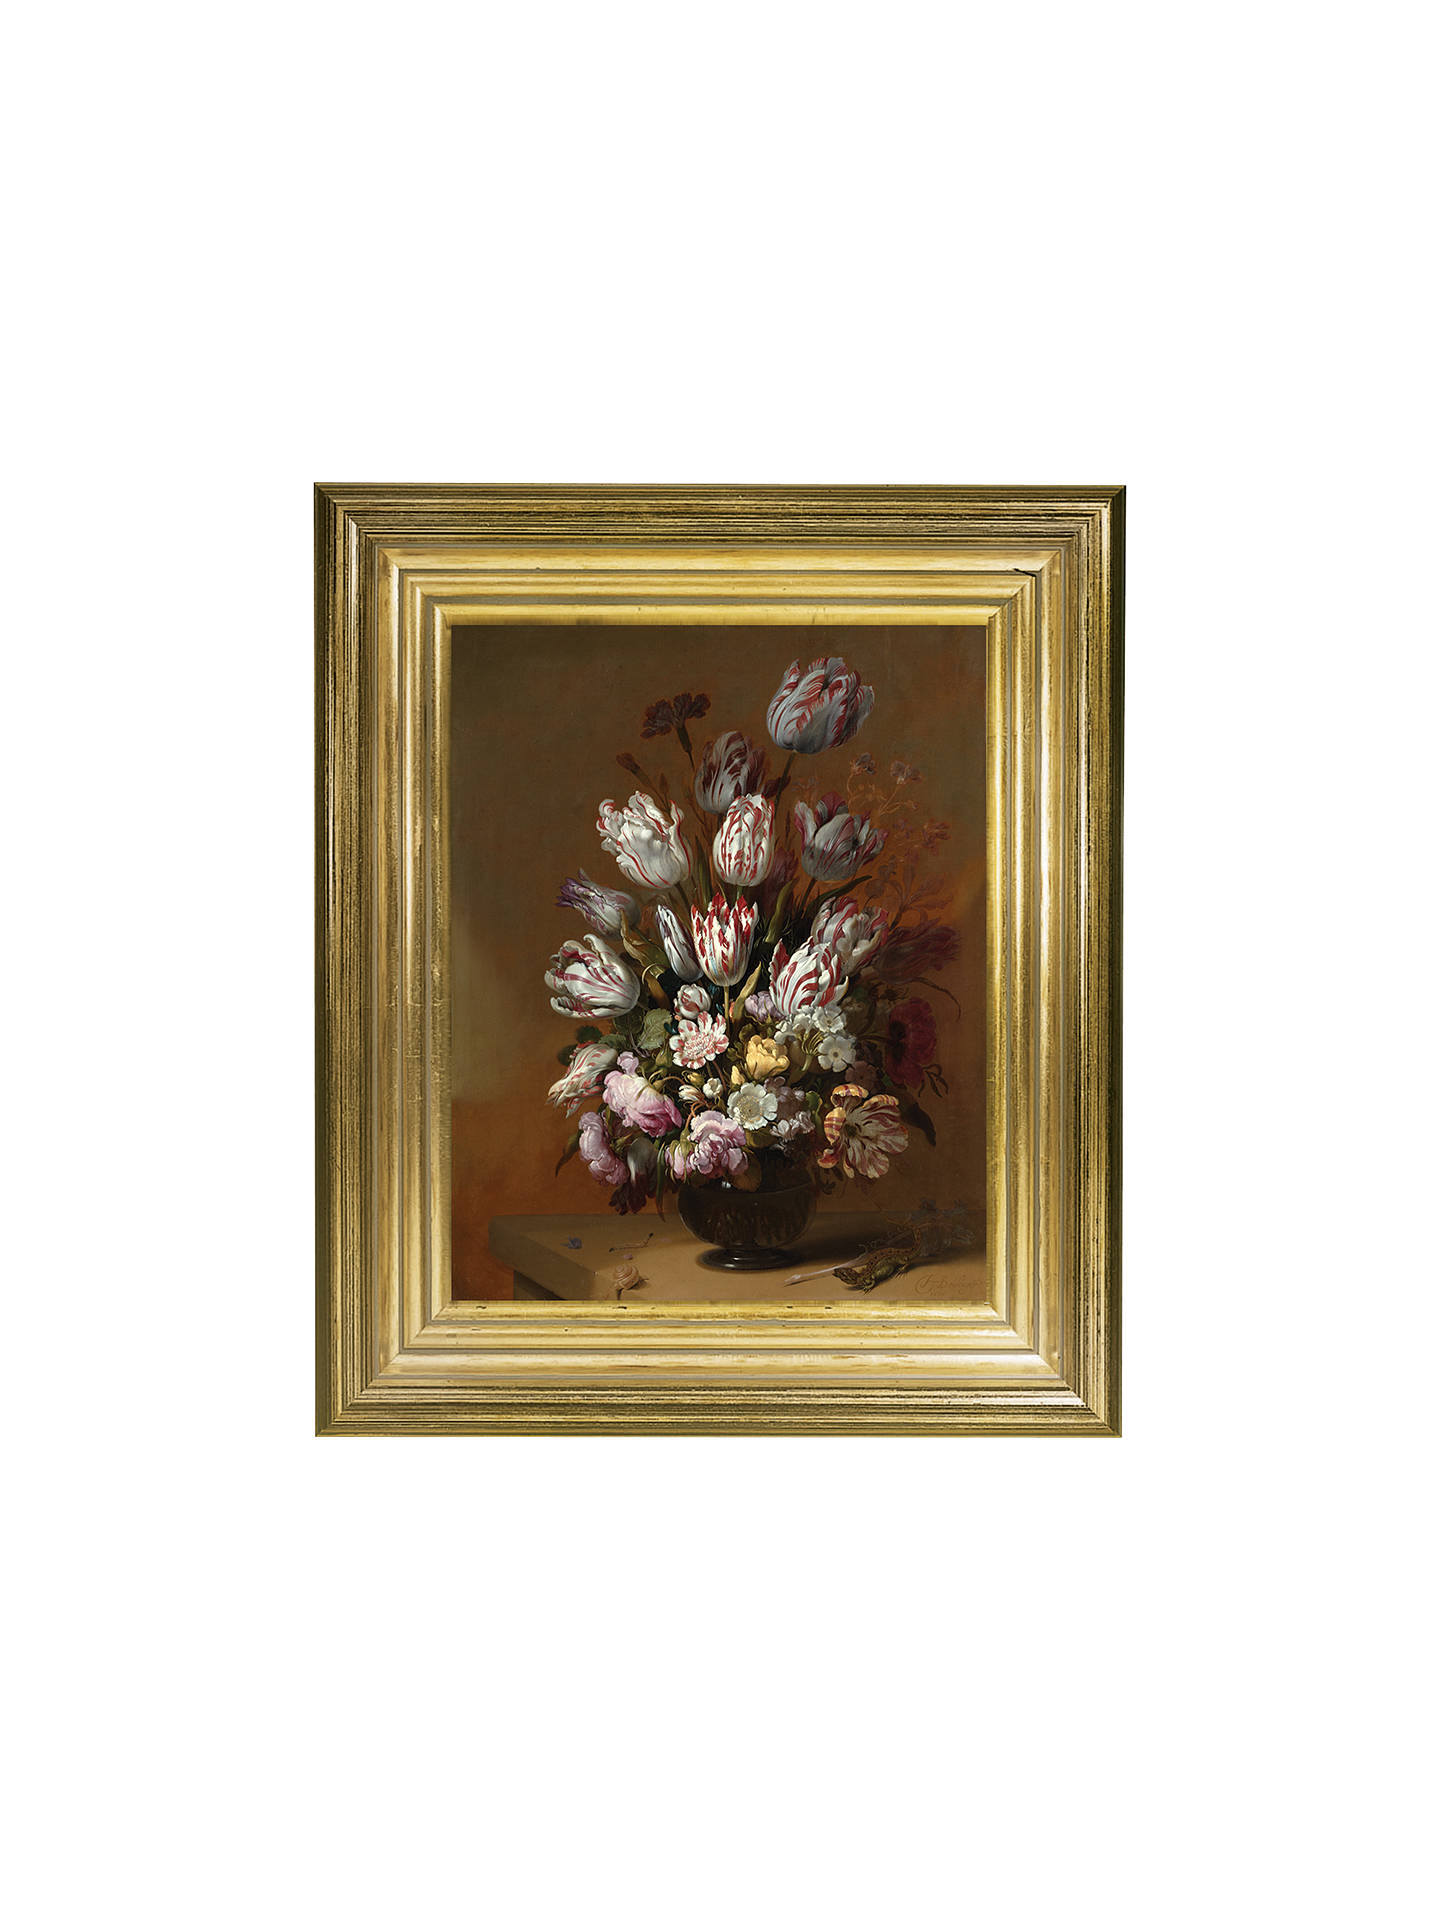 BuyRijksmuseum, Hans Bollongier - Still Life with Flowers Framed Print, 34 x 29cm Online at johnlewis.com